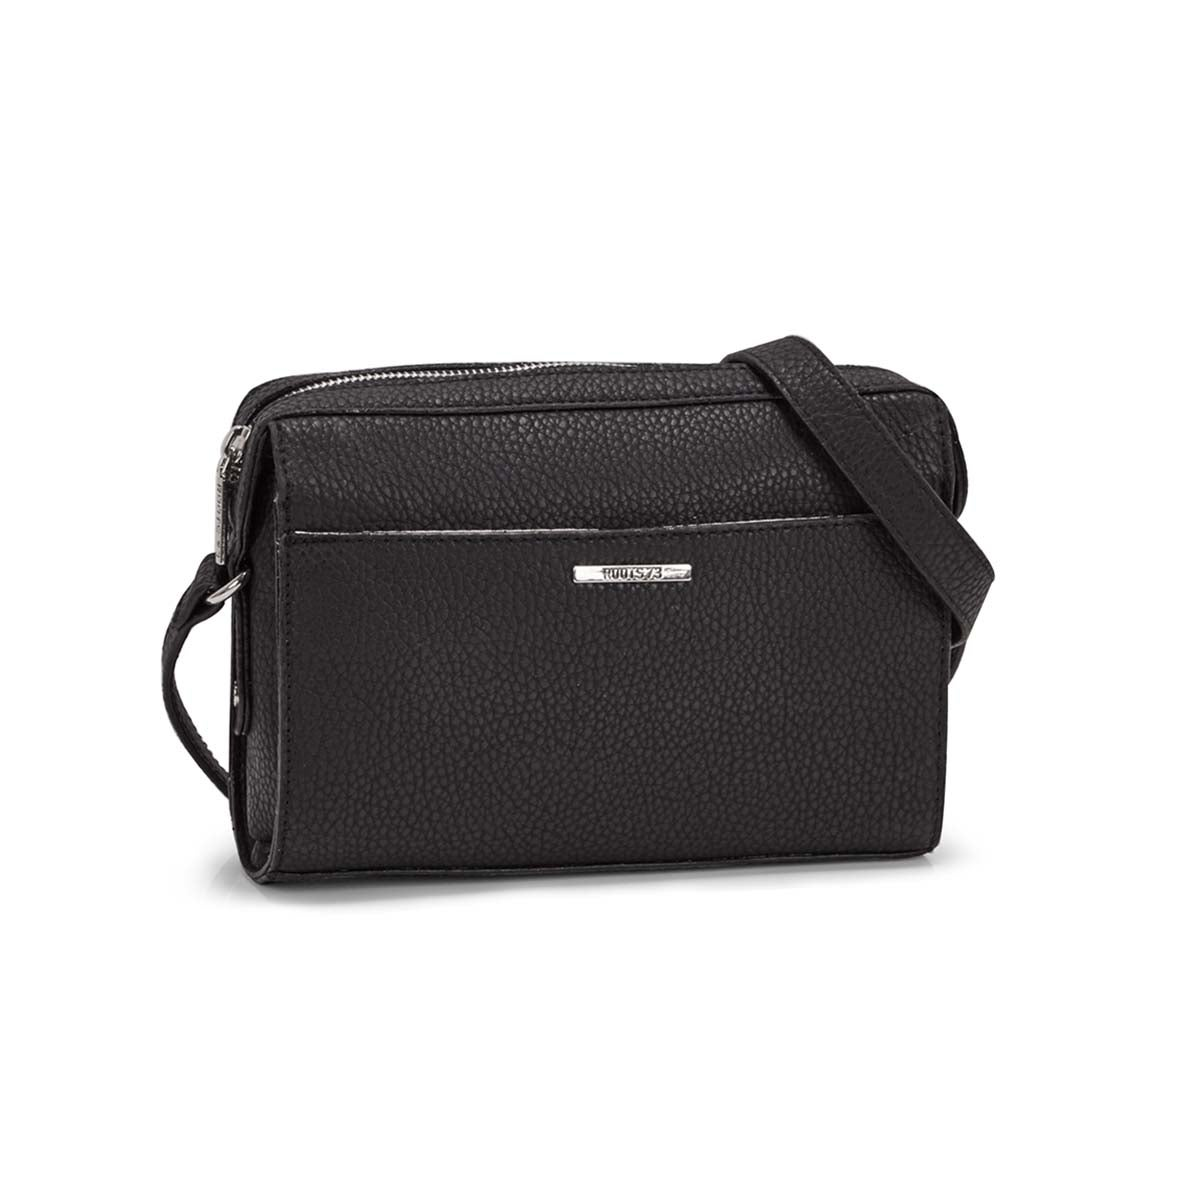 Women's R5226 black crossbody